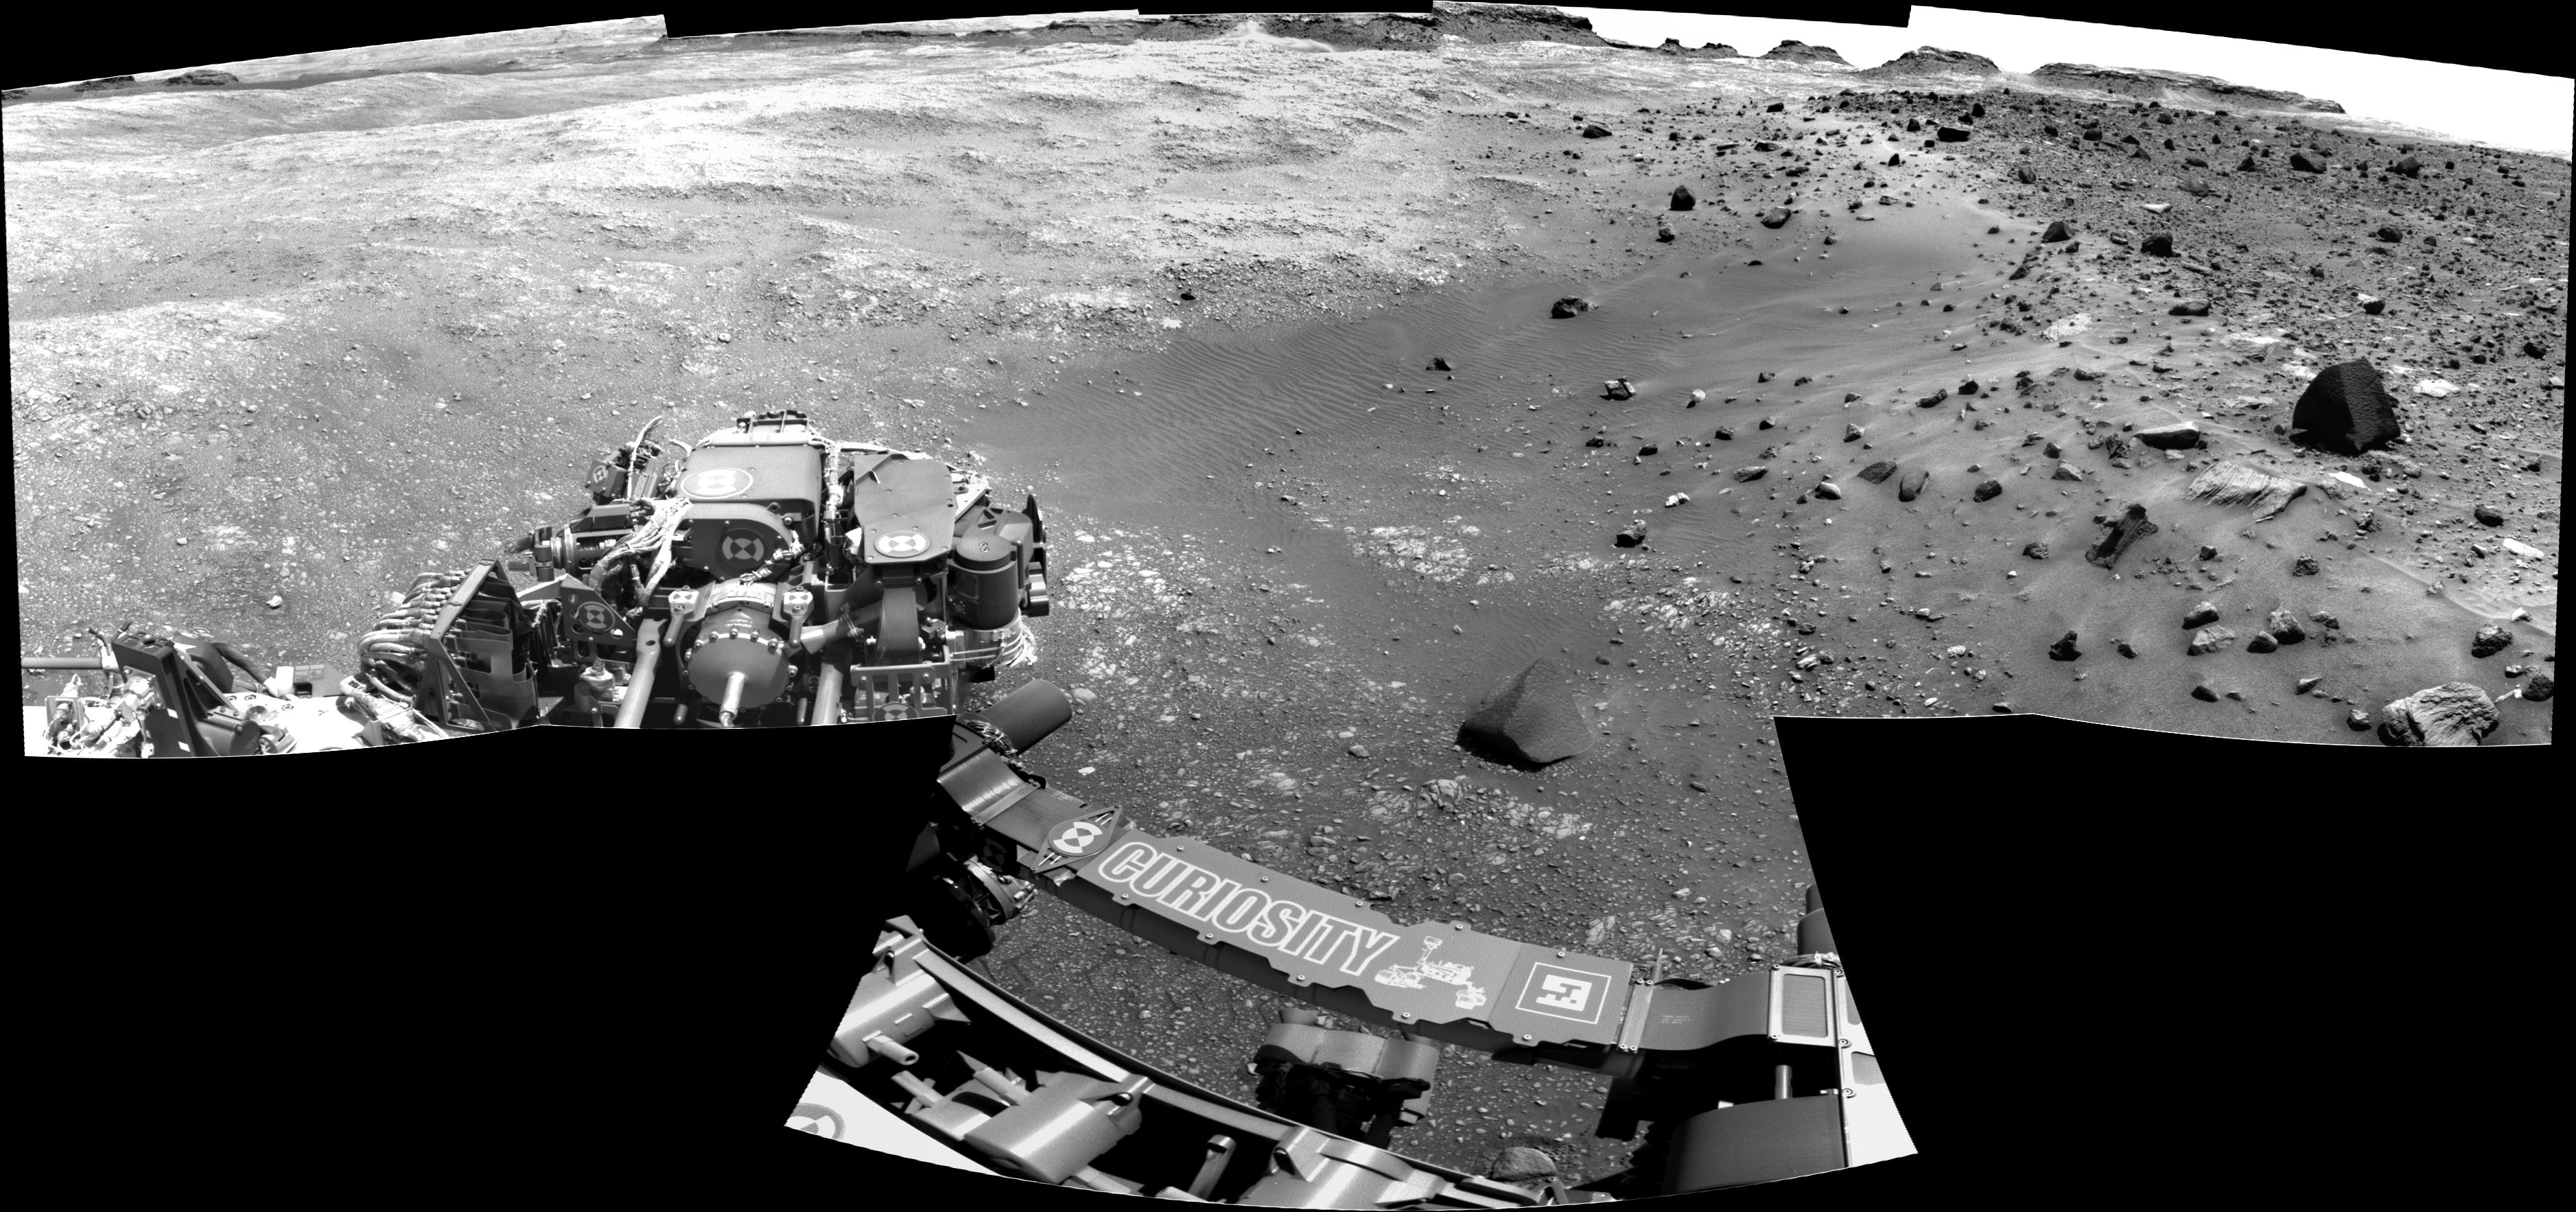 panoramic curiosity rover b&w view 1 - sol 1400 - was life on mars